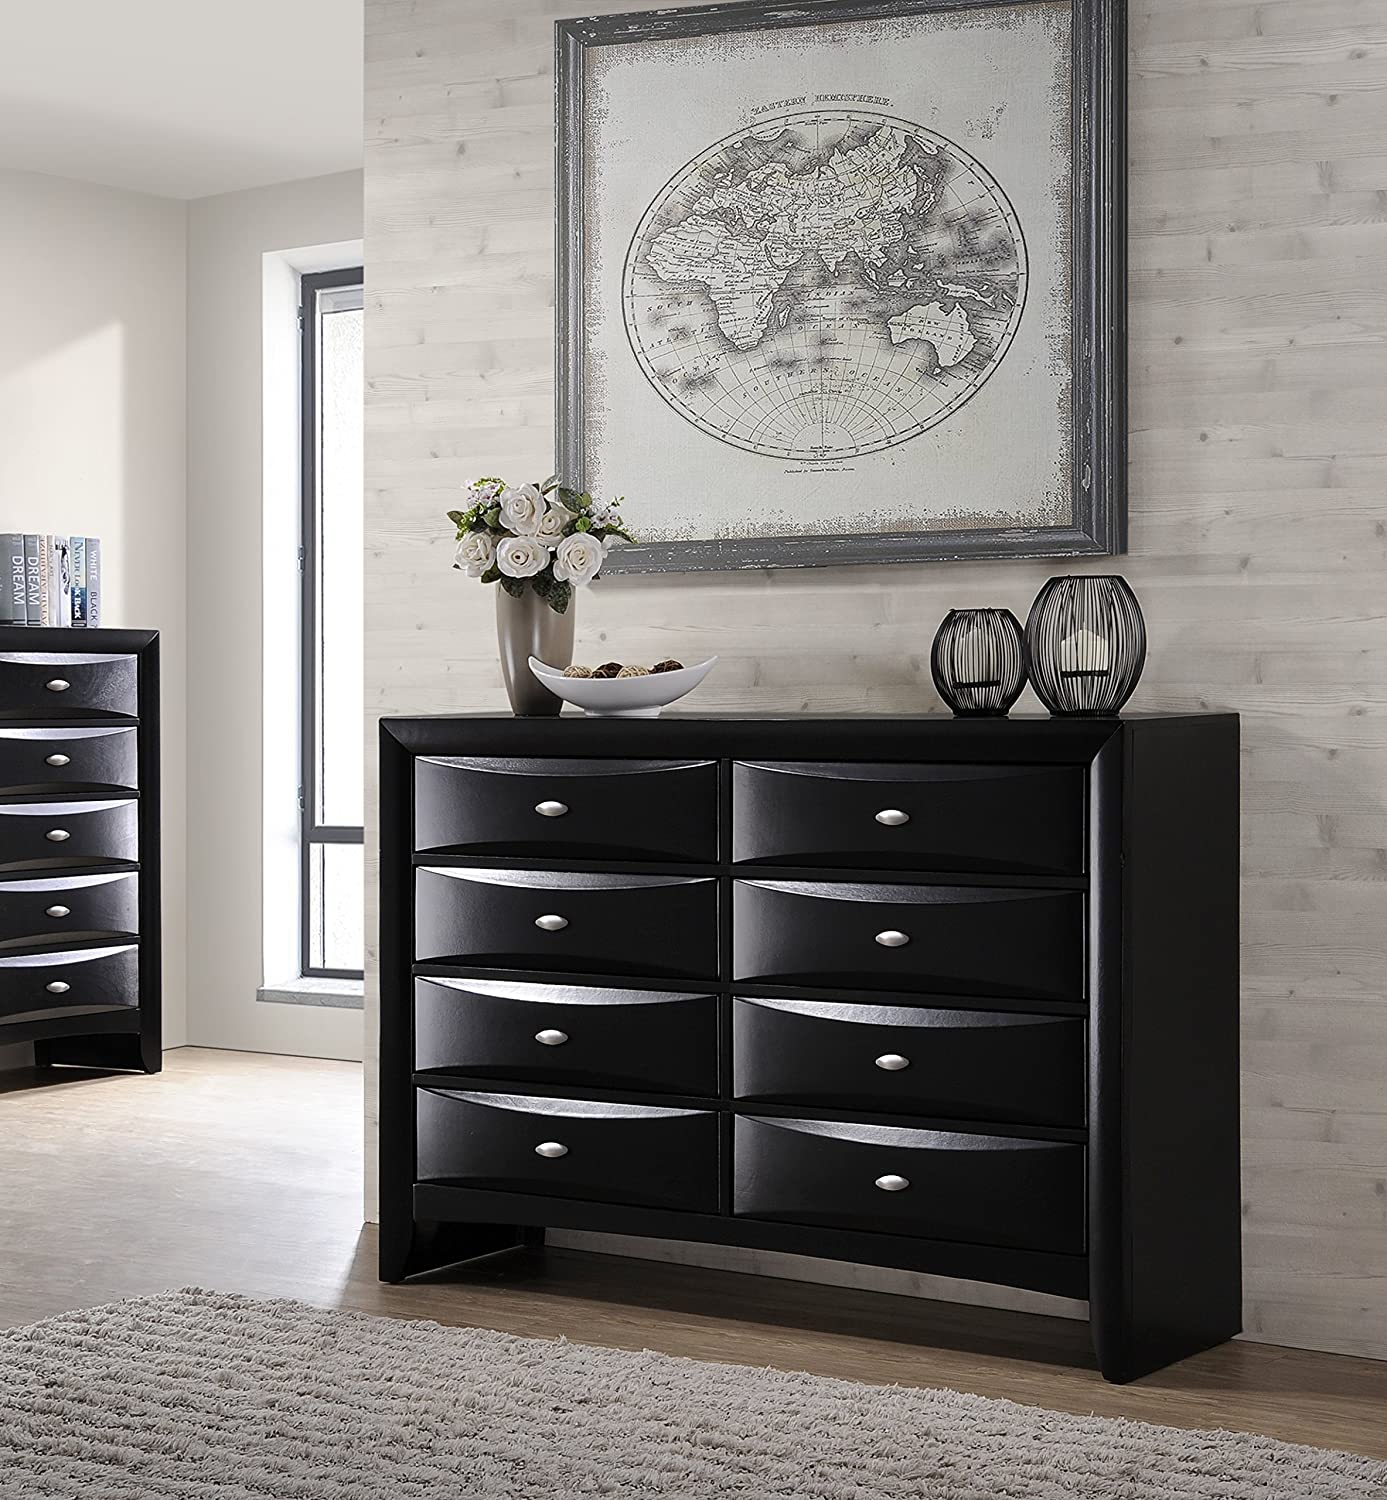 chests p depot prepac fully home dressers white the monterey drawer dresser k wdc assembled